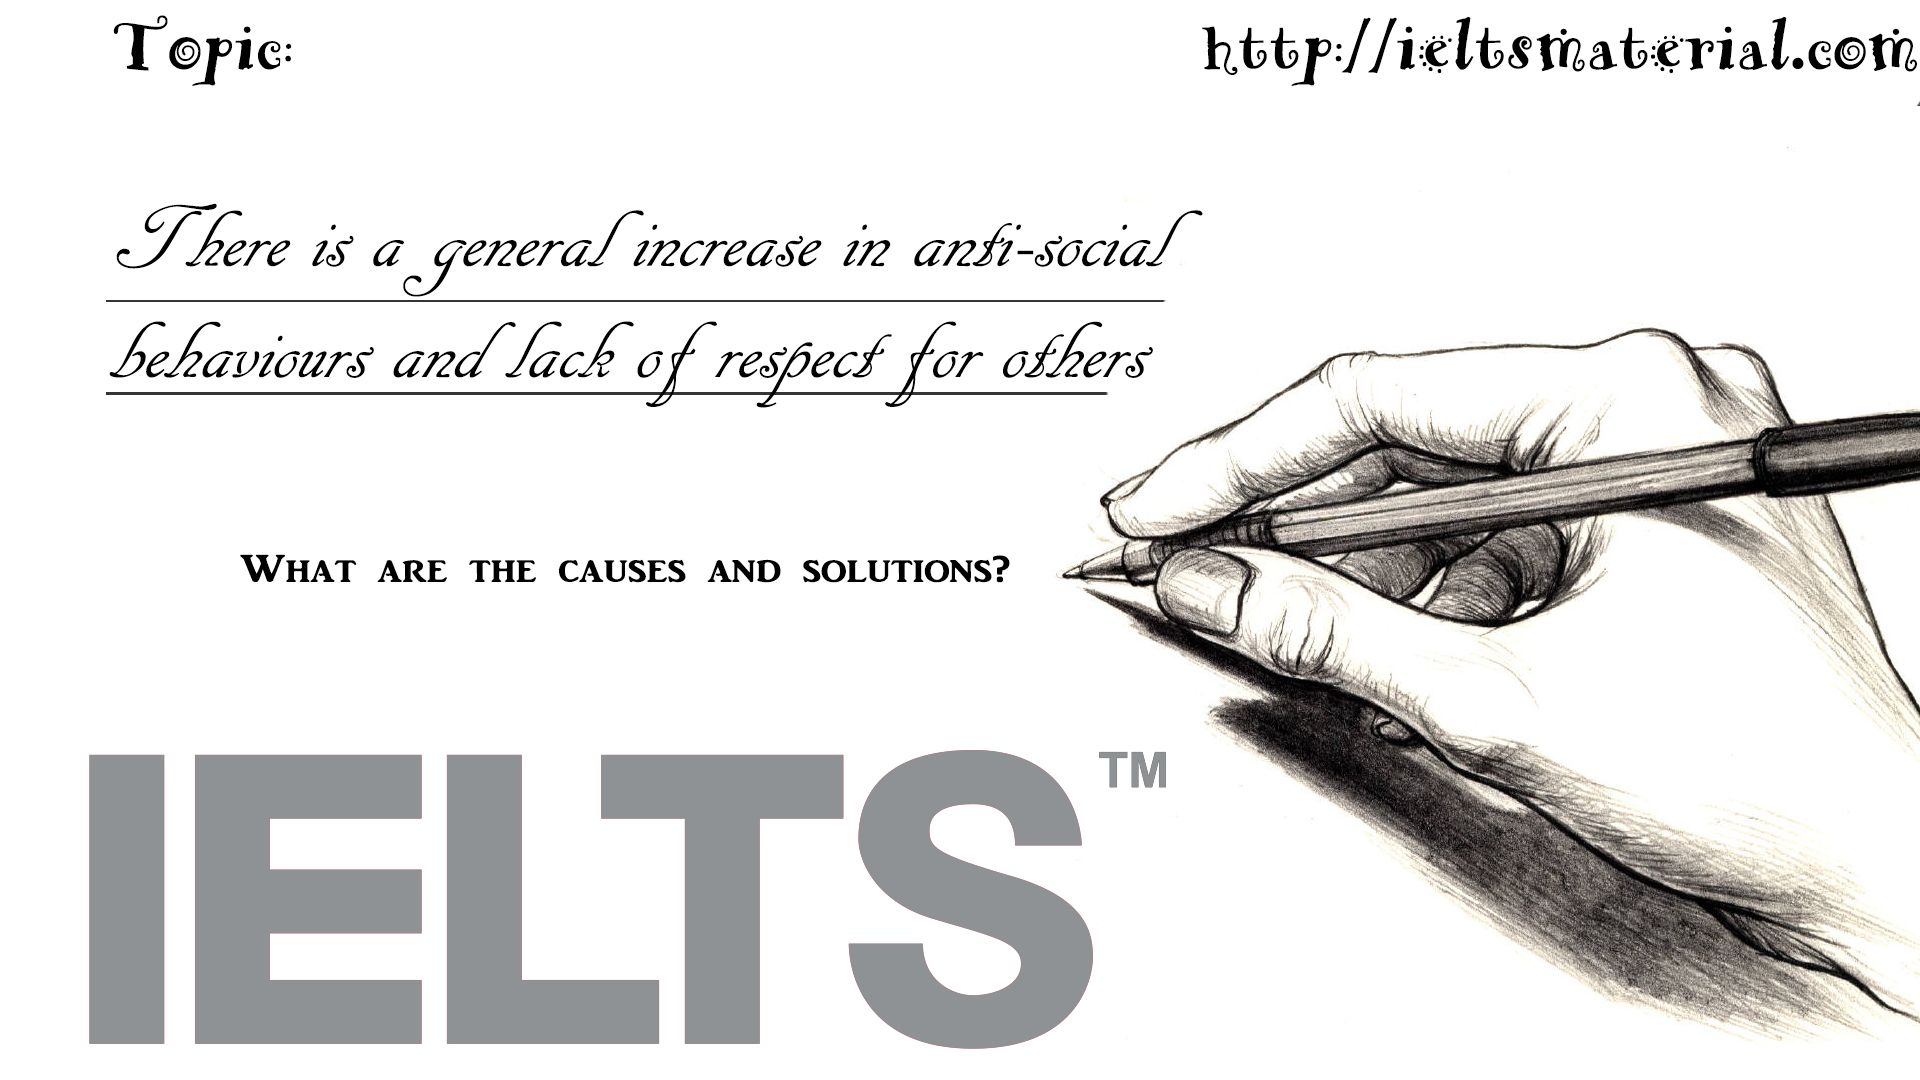 anti social behaviour essay anti social behaviour essay do my anti social behaviour essayacademic ielts writing task cause and solution there is a general increase in